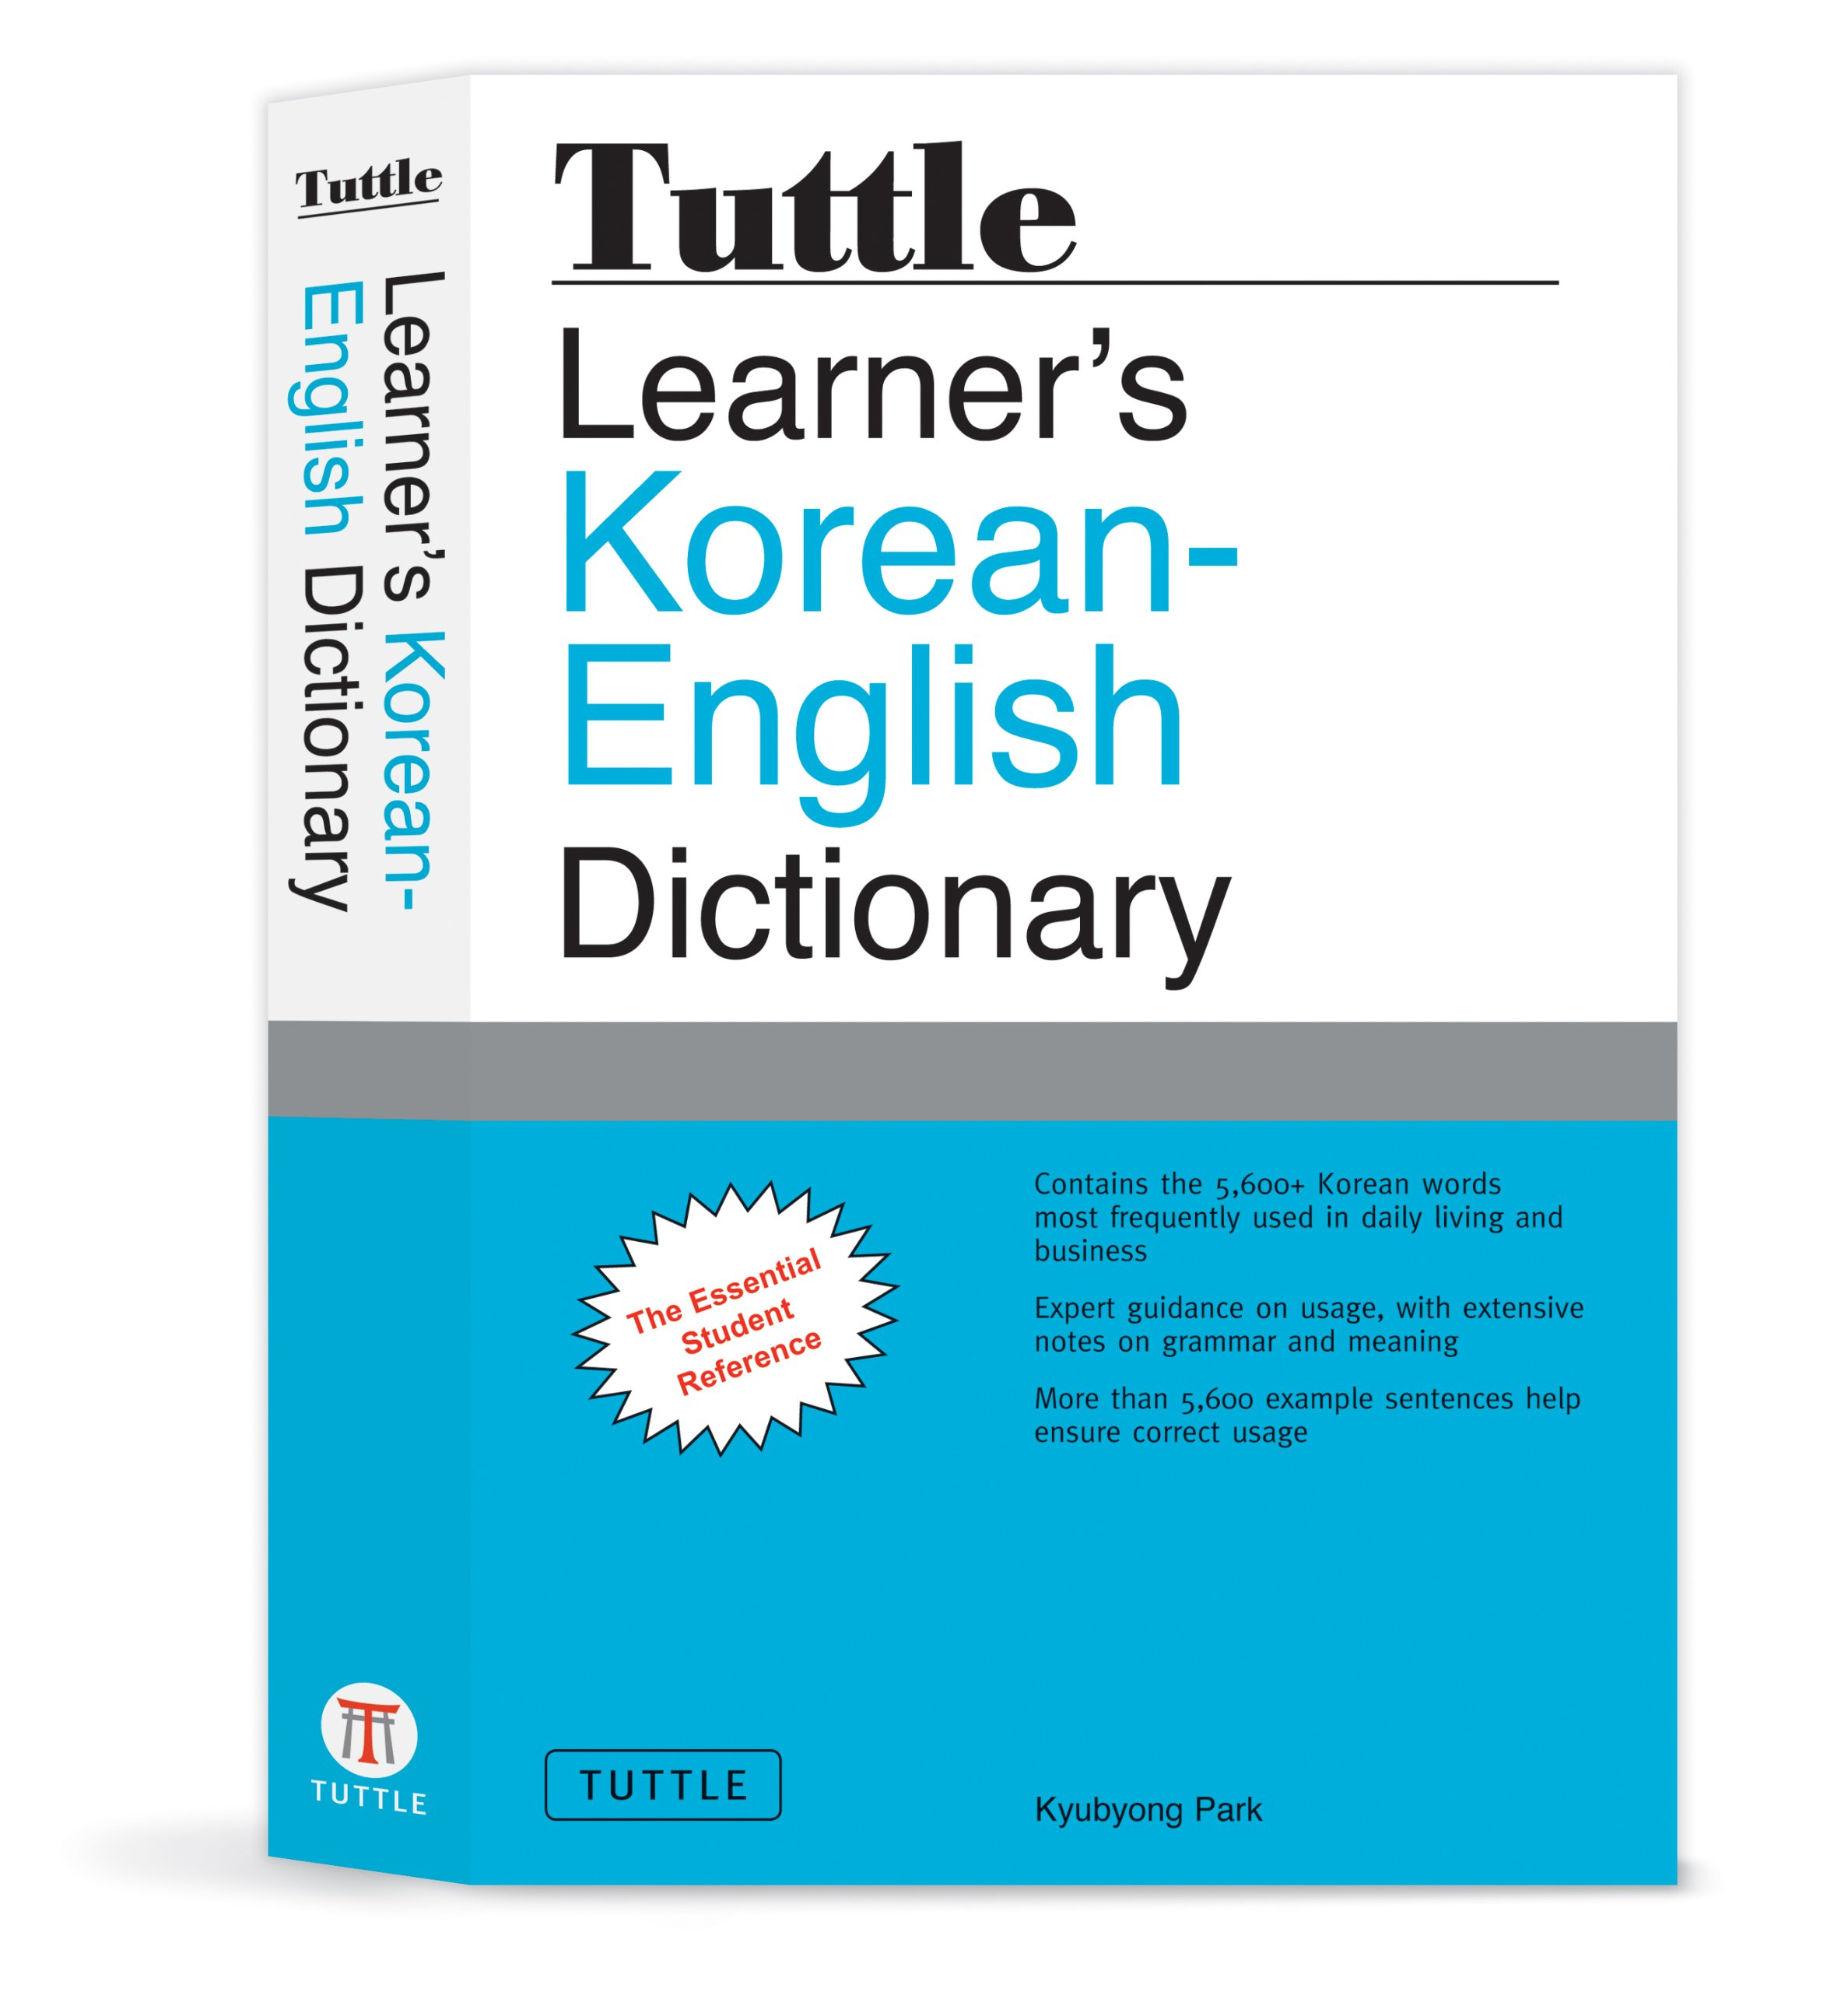 Tuttle Learners Korean-English Dictionary